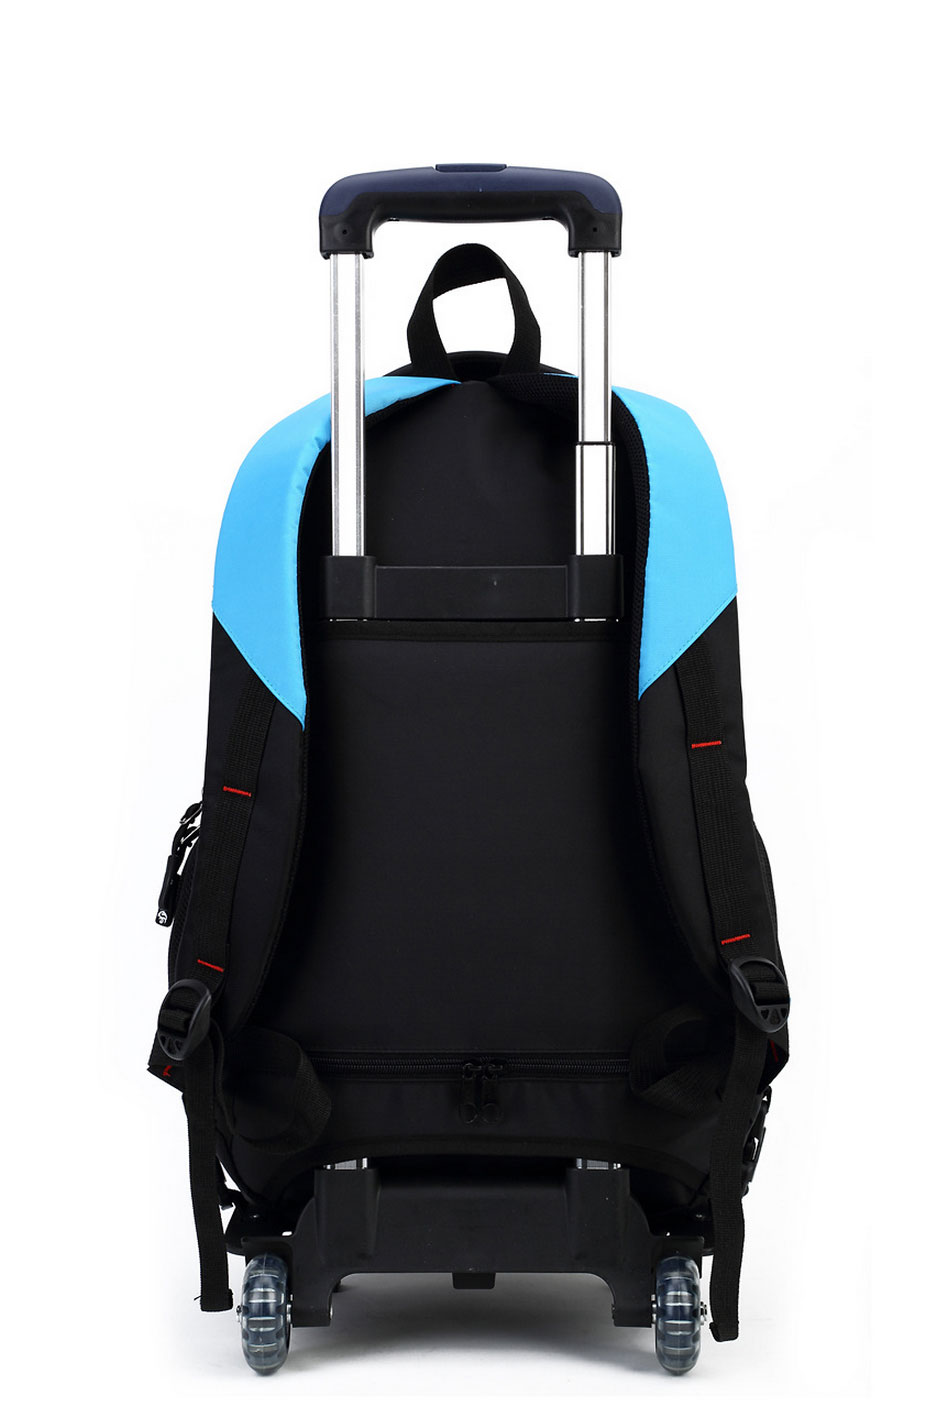 Trolley-Backpack-For-Children_08